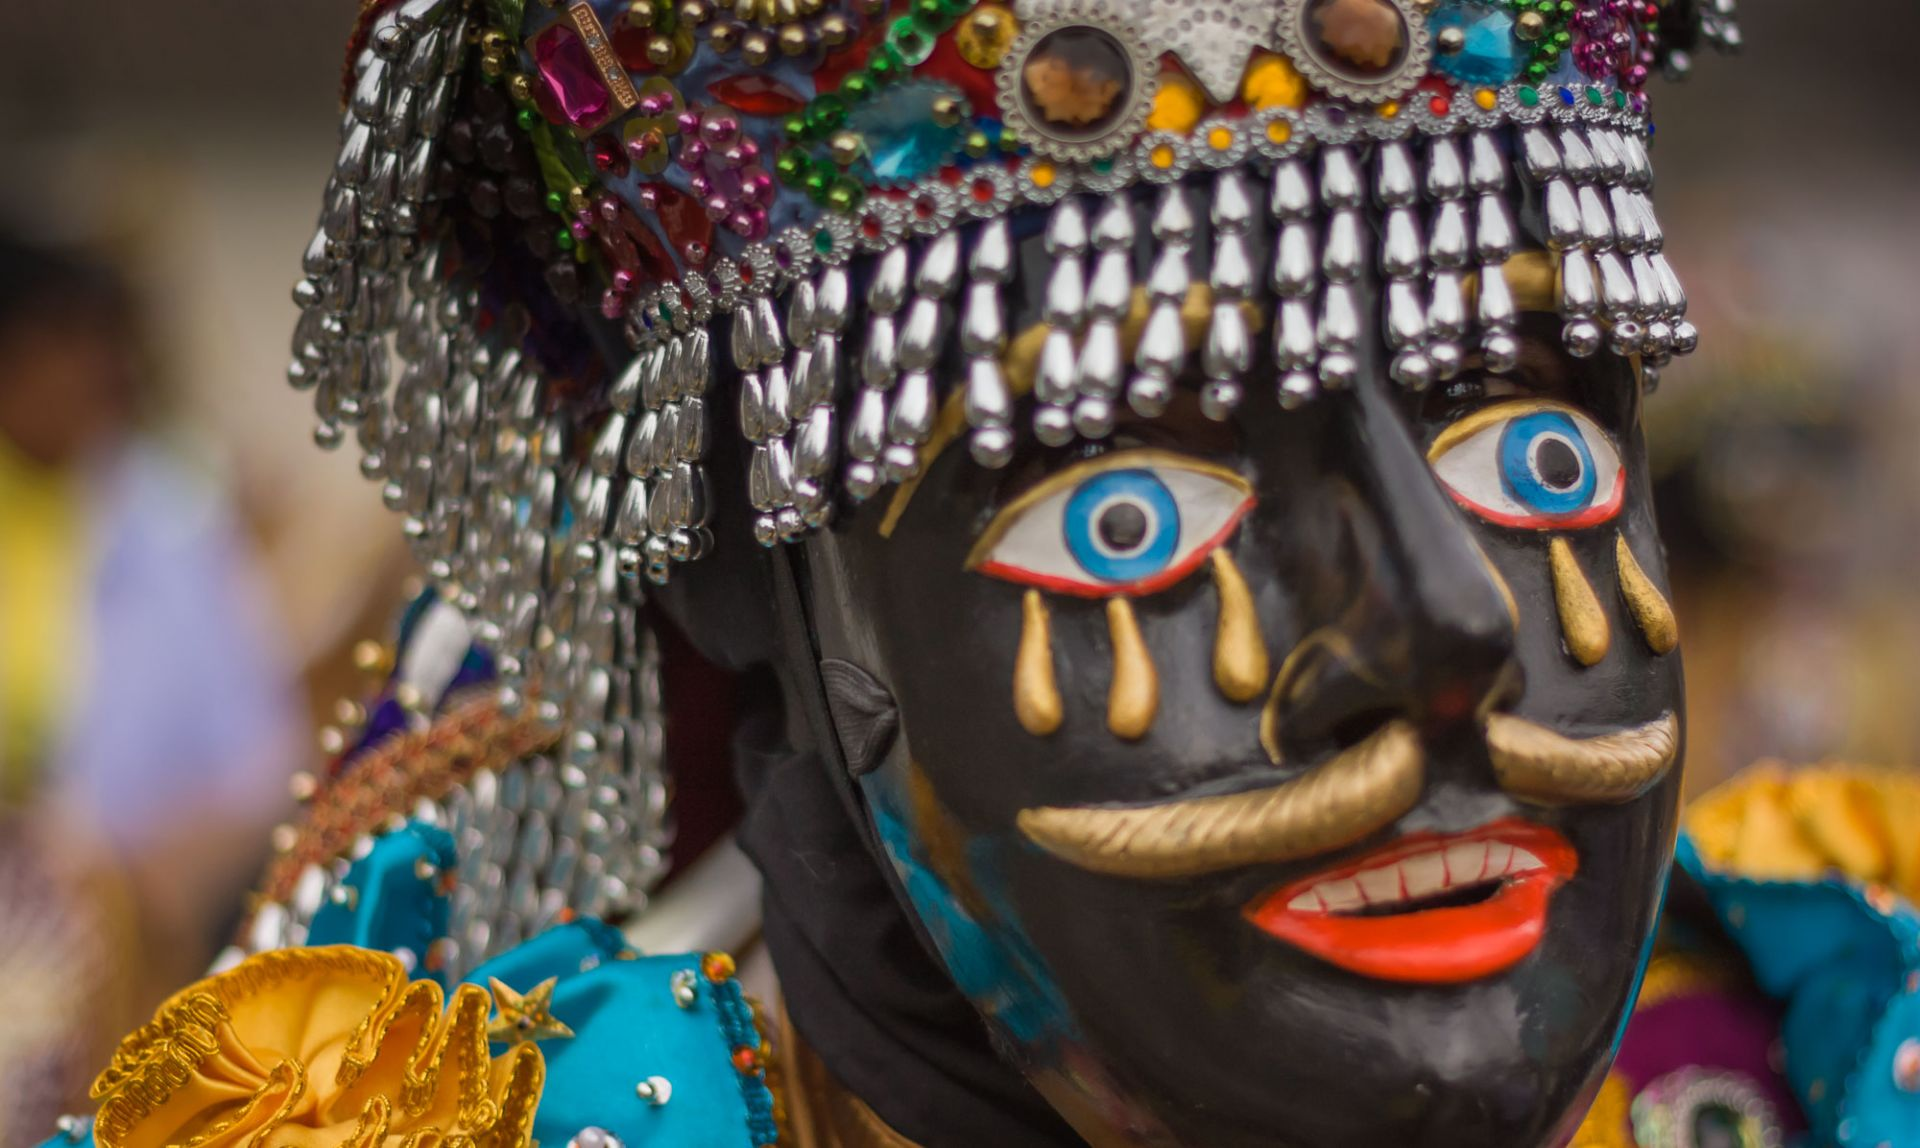 Close-up of man in elaborate negrillo mask, taken on our Paucartambo cultural tour